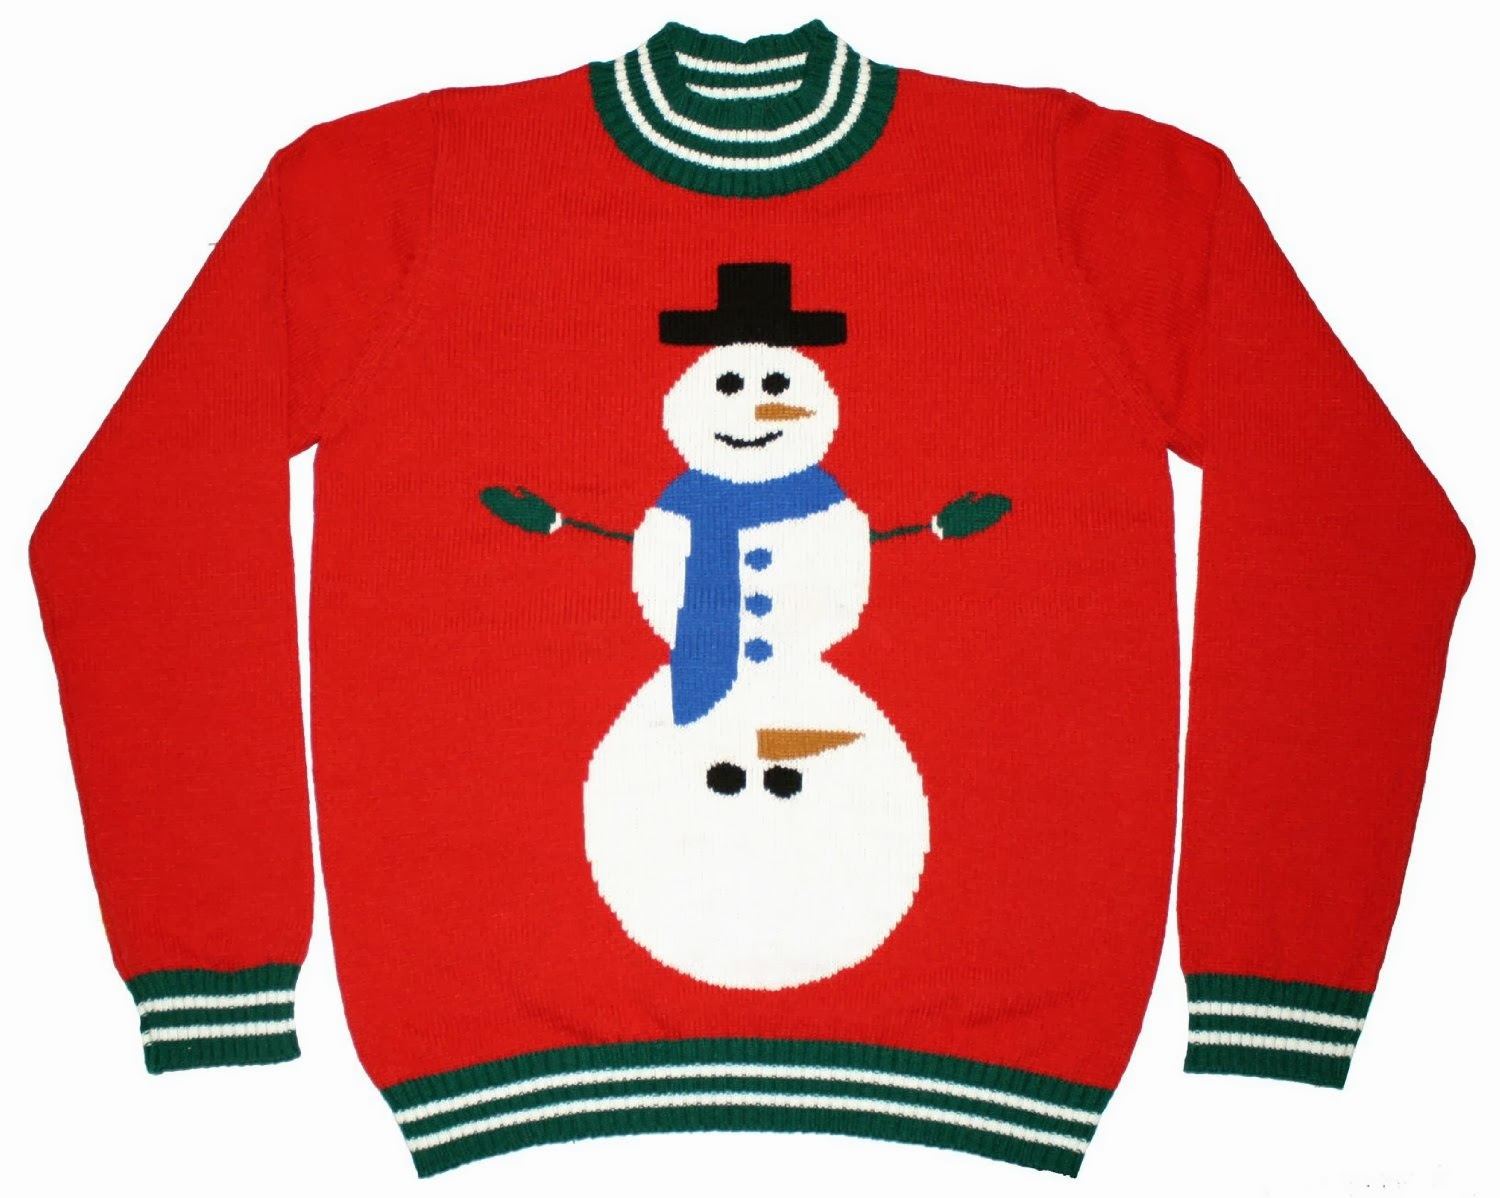 Christmas Sweater Clipart.Snowman Ugly Christmas Sweater Clipart Clip Art Bay